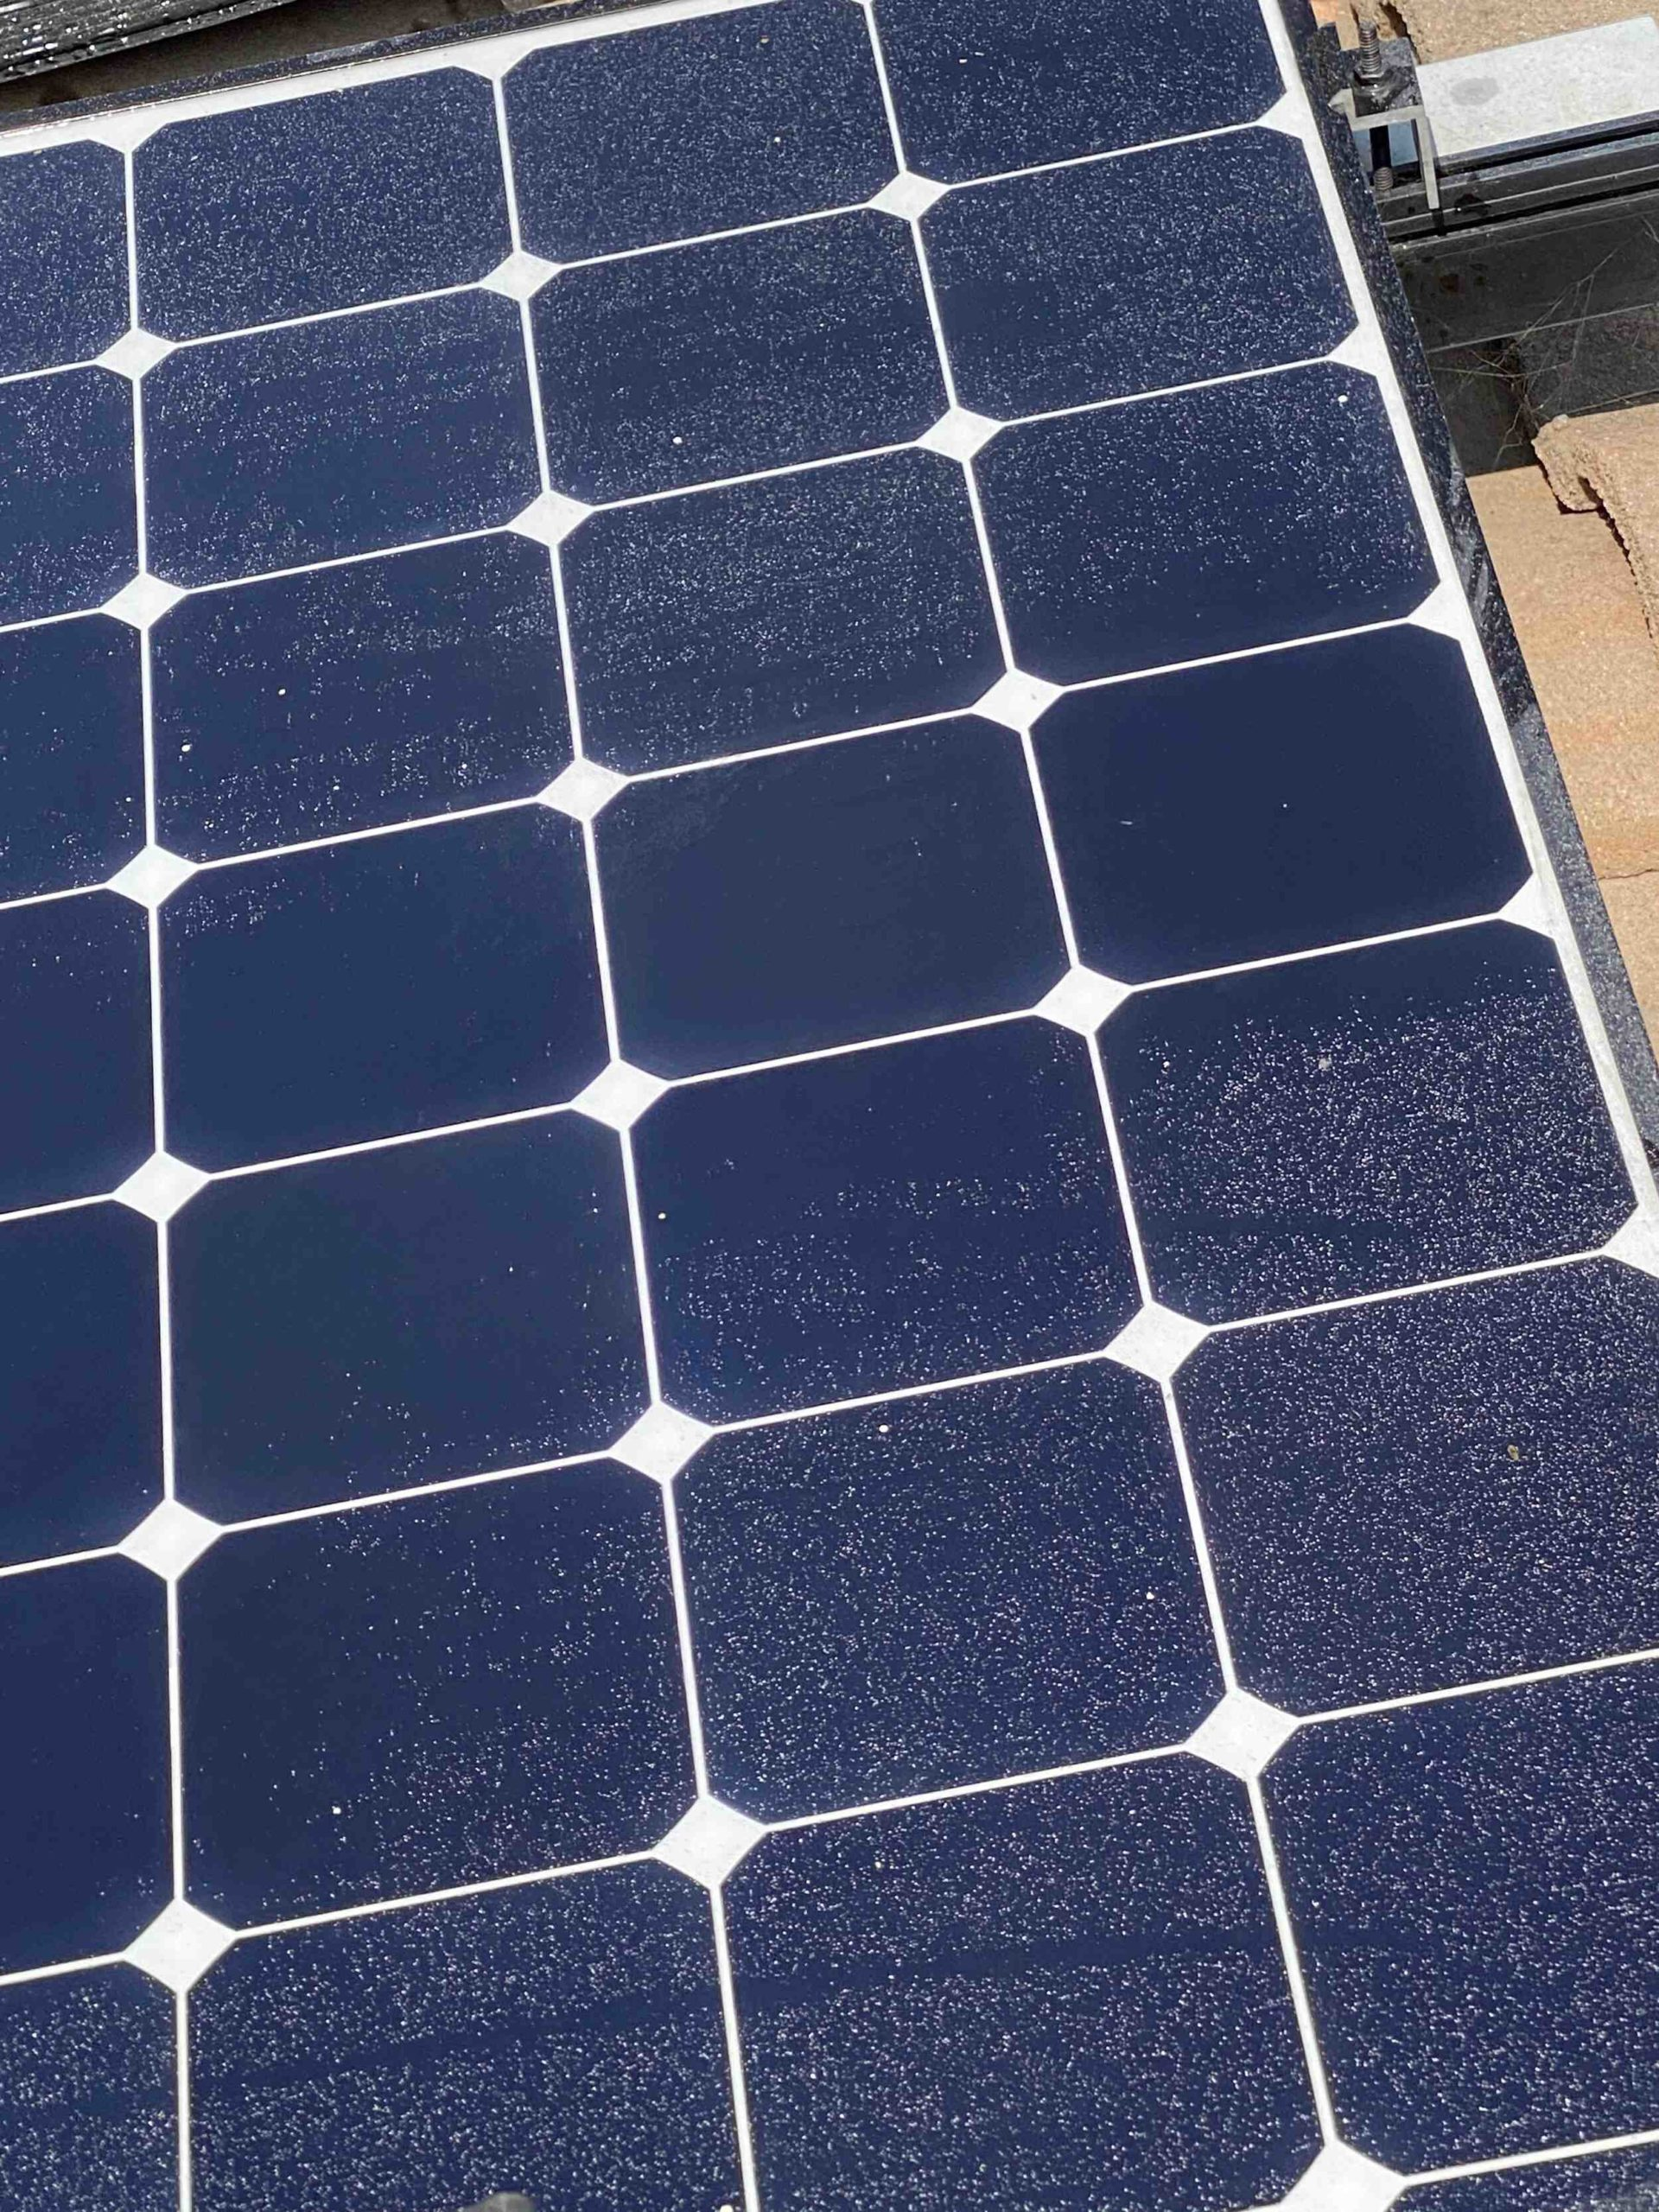 Can a C10 install solar in California?